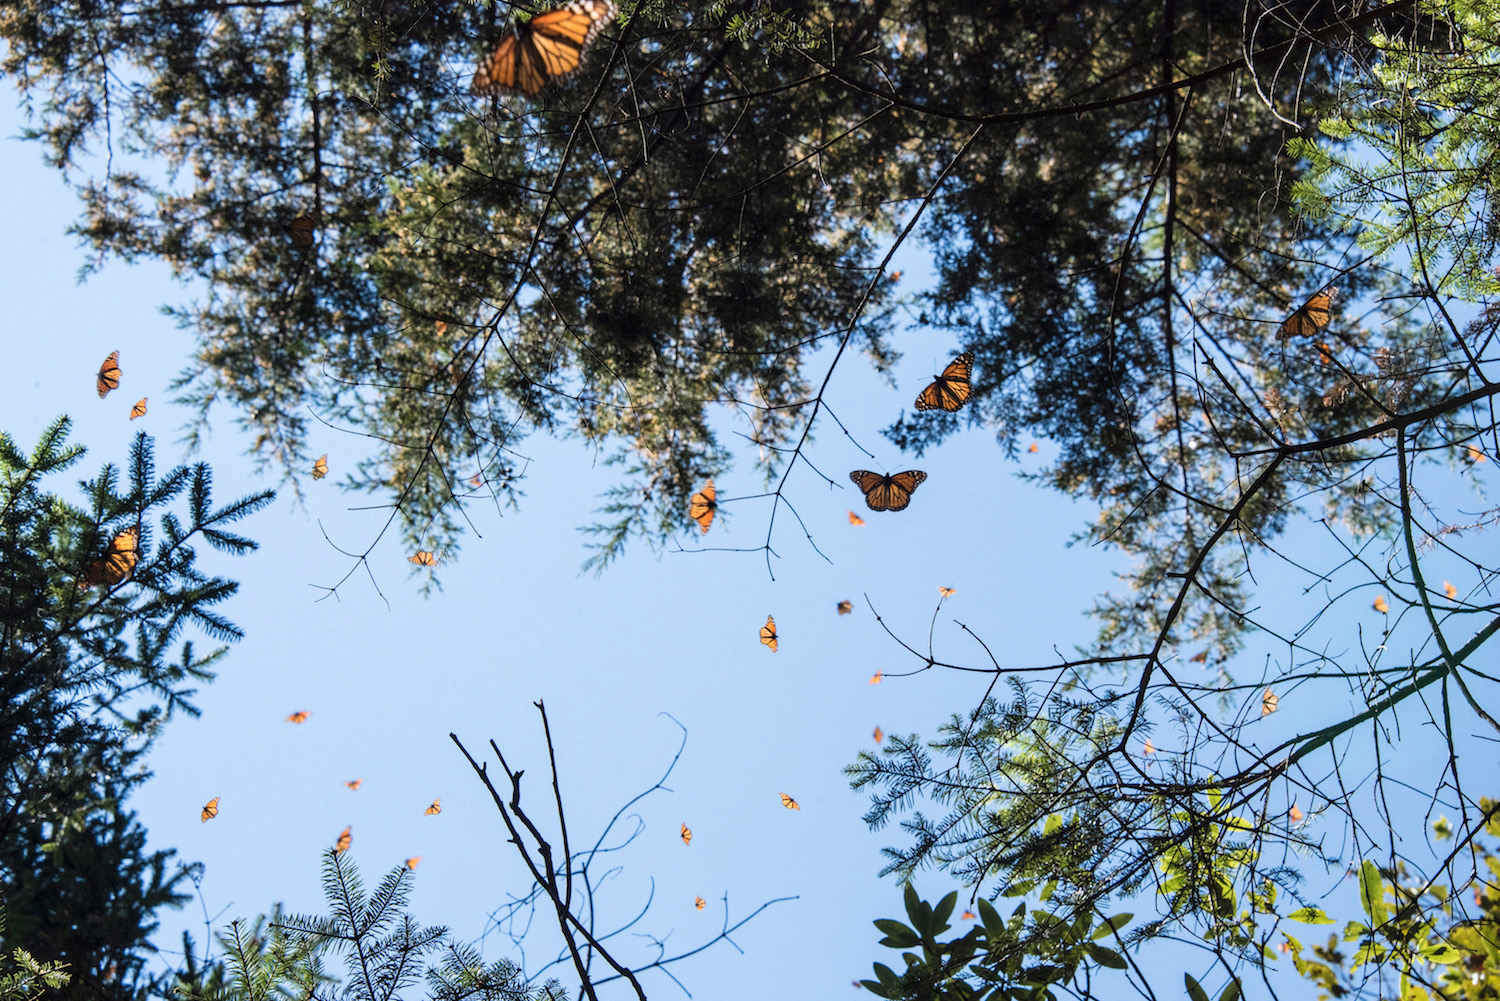 Monarch butterflies fill the sky over Mexico's Cerro Pelon Biosphere